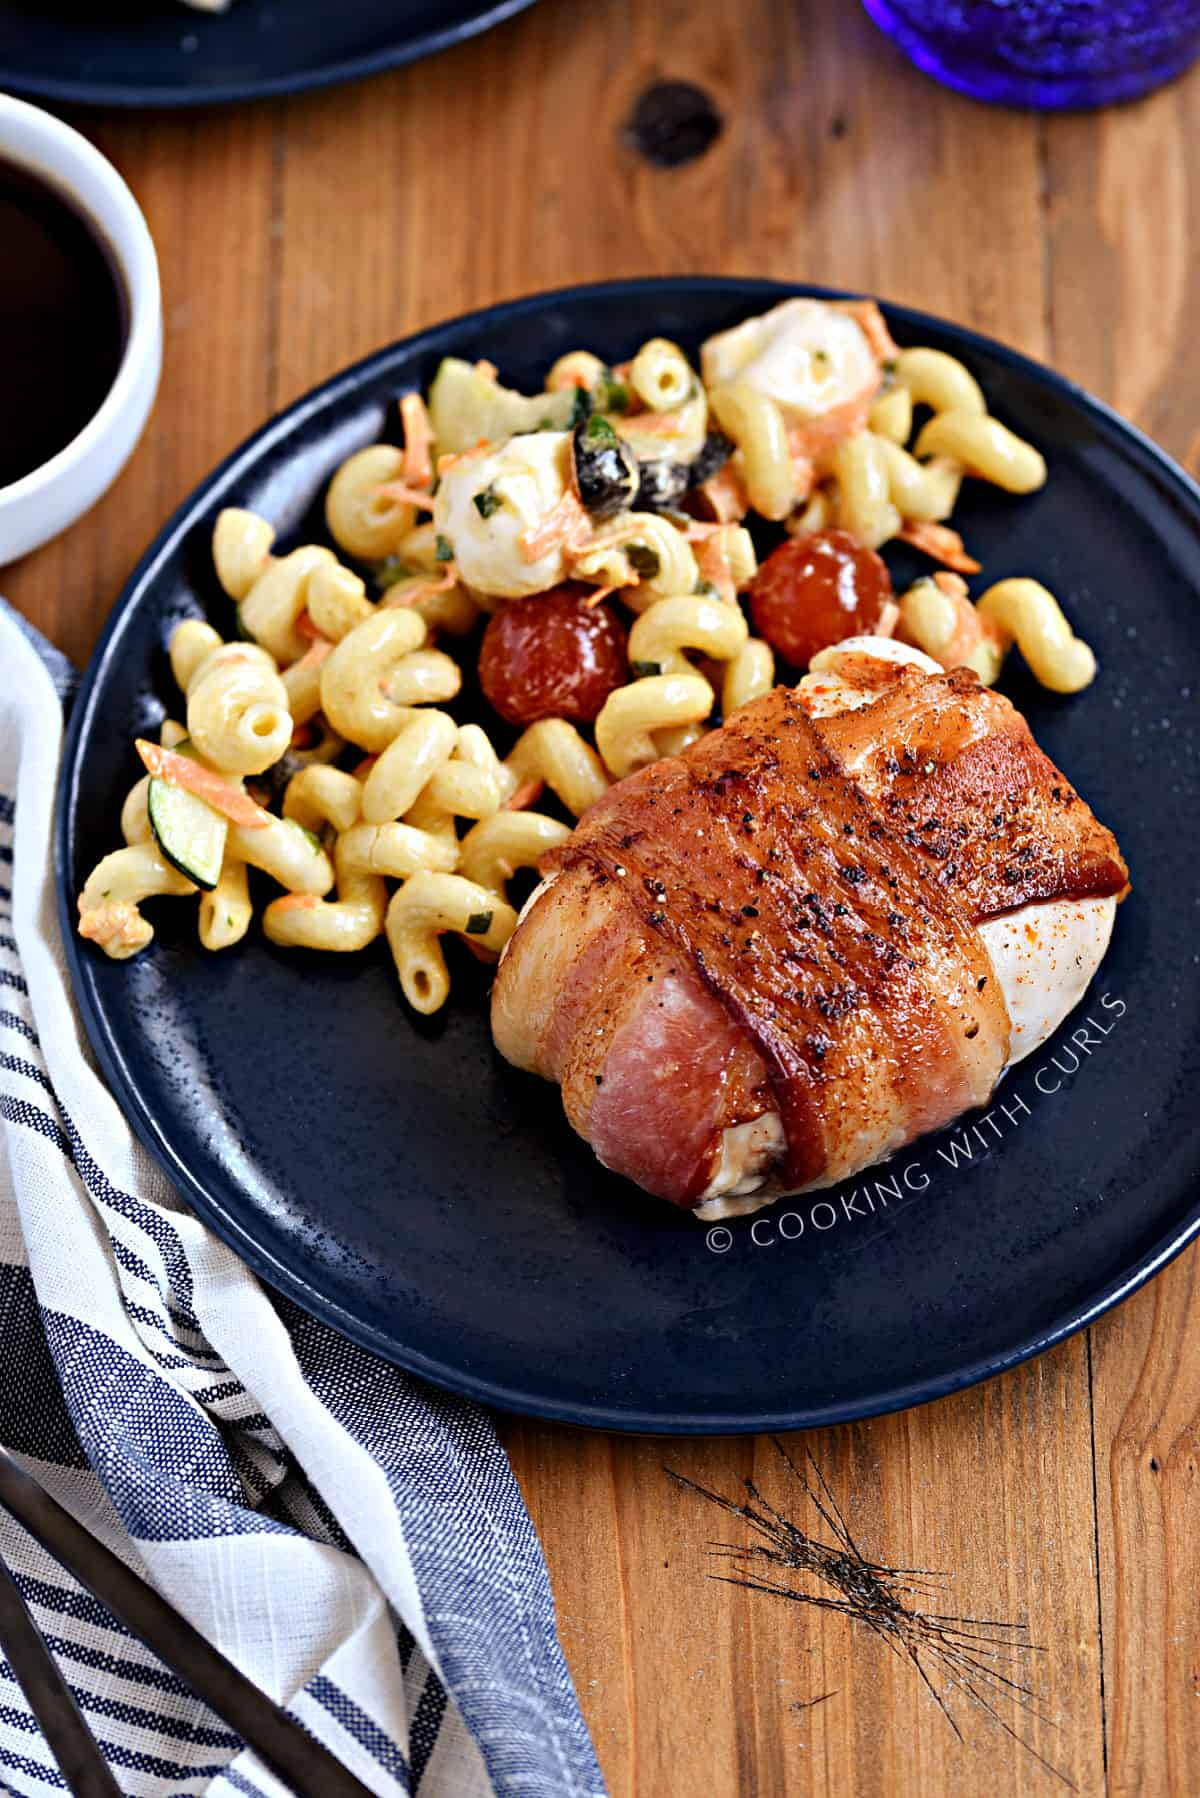 Bacon wrapped chicken and pasta salad on a blue plate.